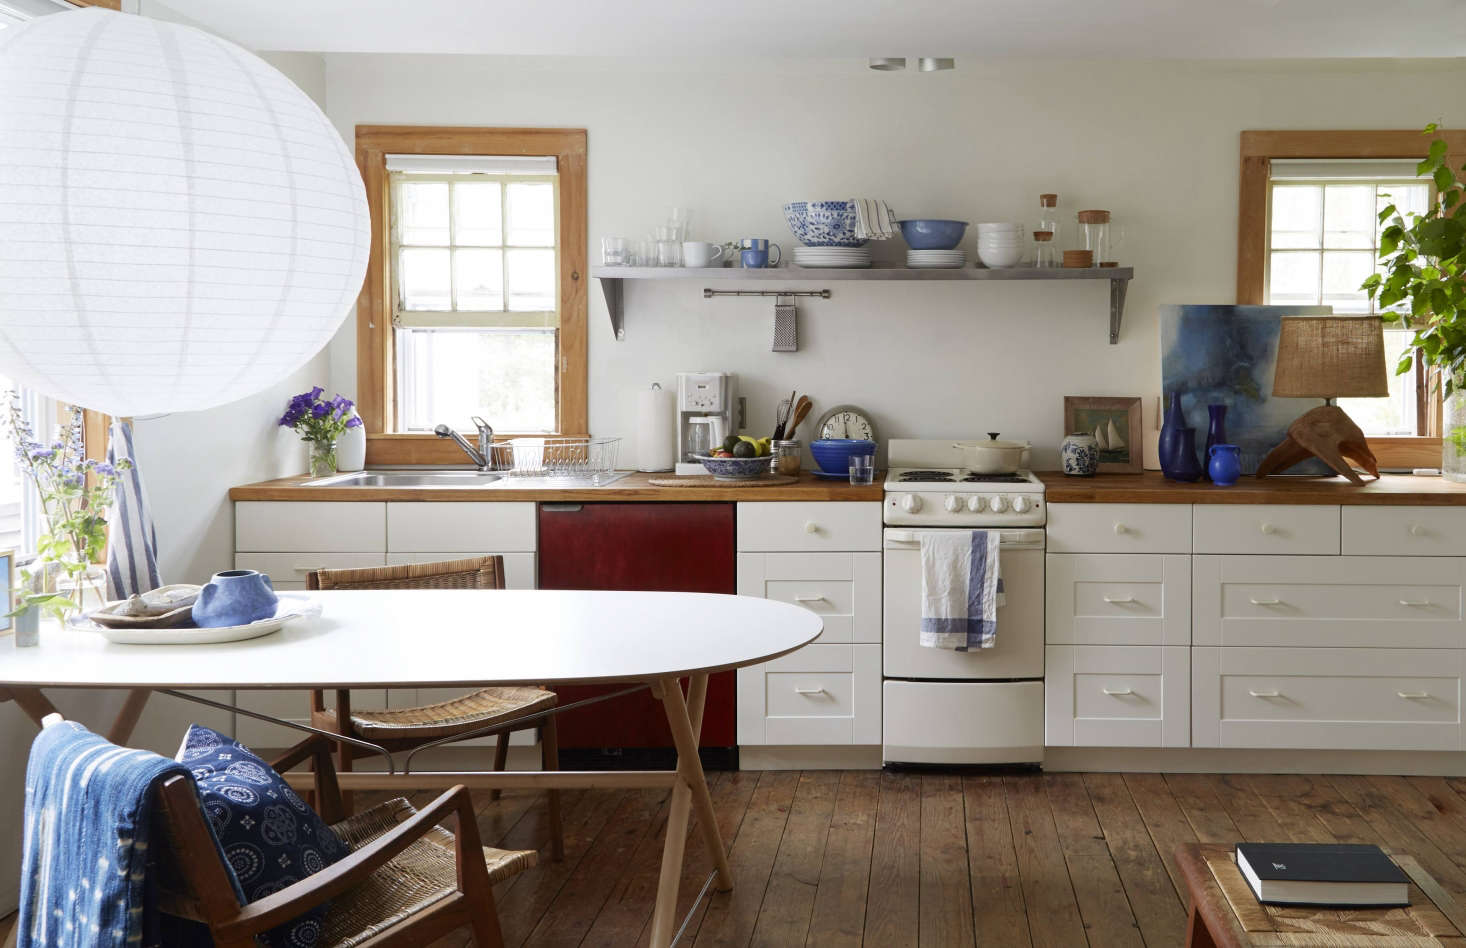 Ikea kitchen cabinets, doors, and countertops in a remodeled beach cottage in Provincetown by designer Glenn Ban. For more, seeA Beach Cottage in Provincetown, Styled for Budget-Minded Summer Living.